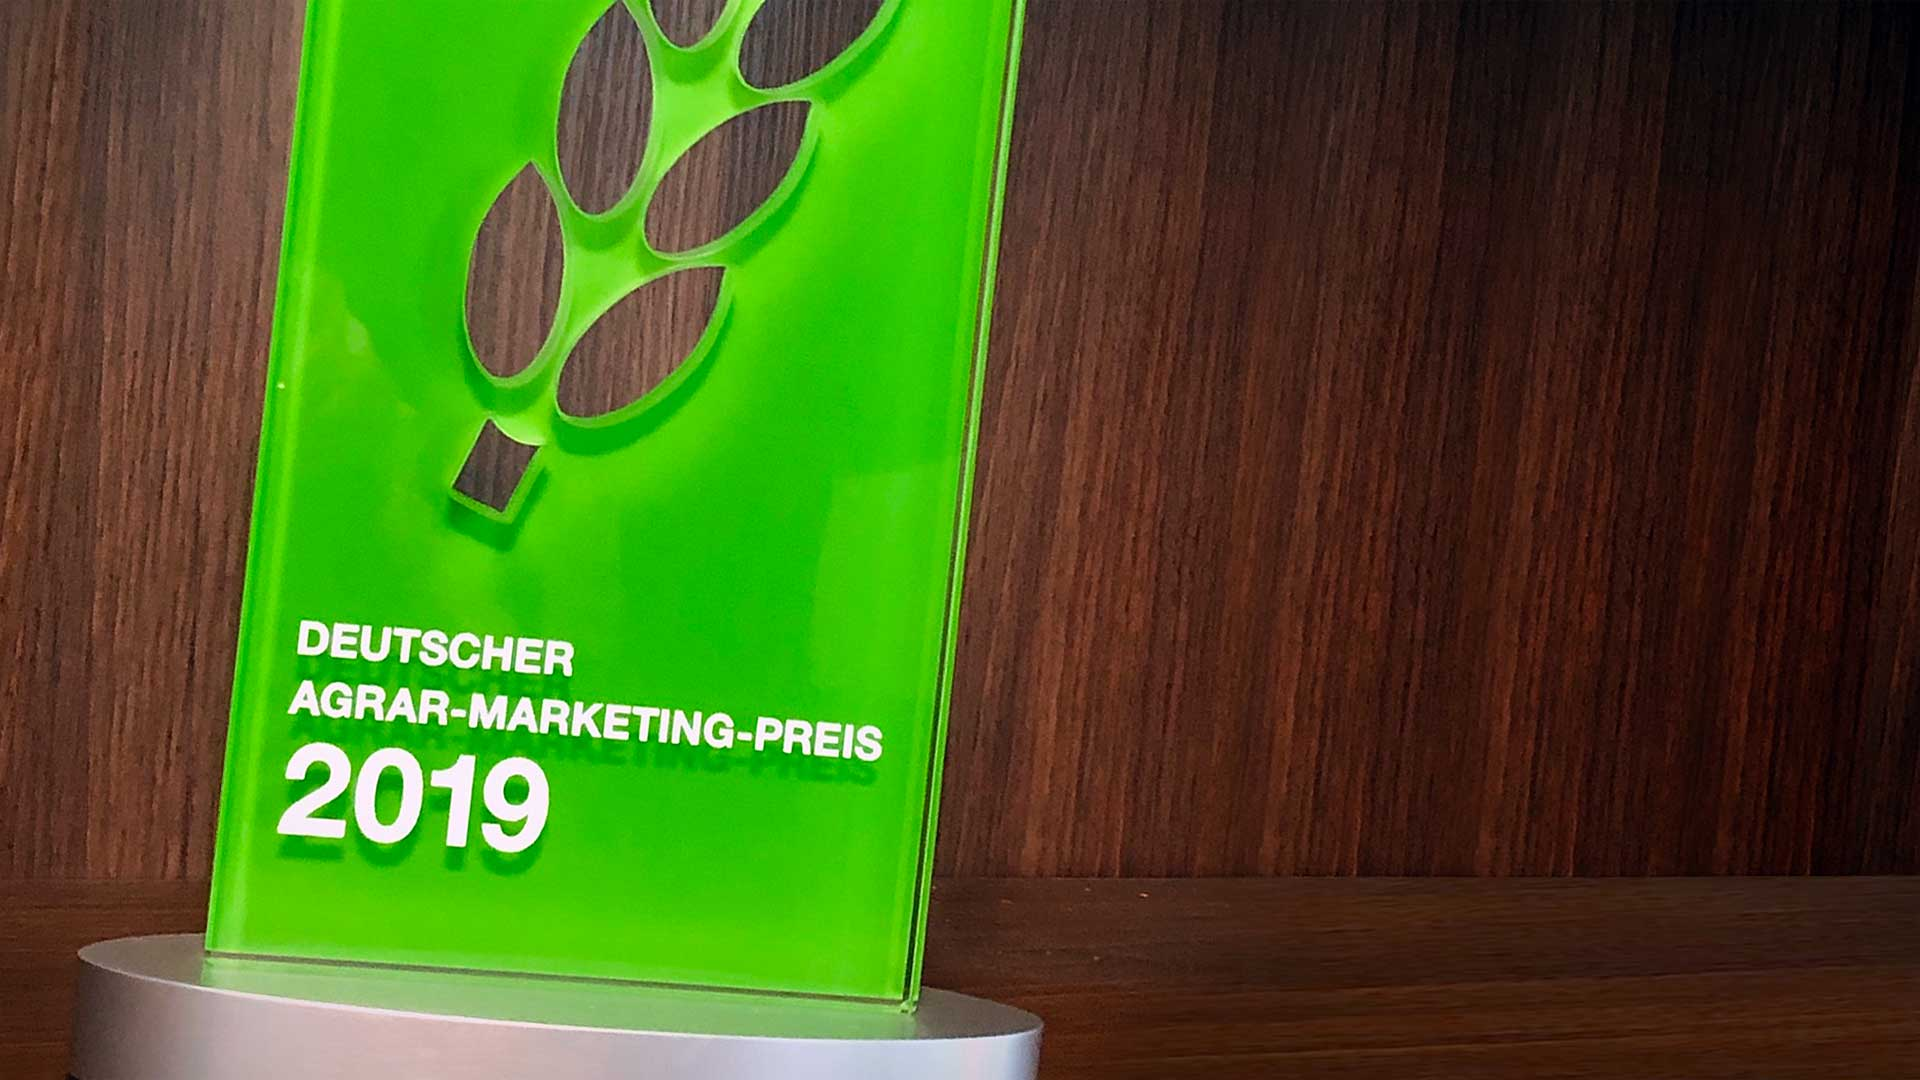 Deutscher Agrar-Marketing-Preis 2019